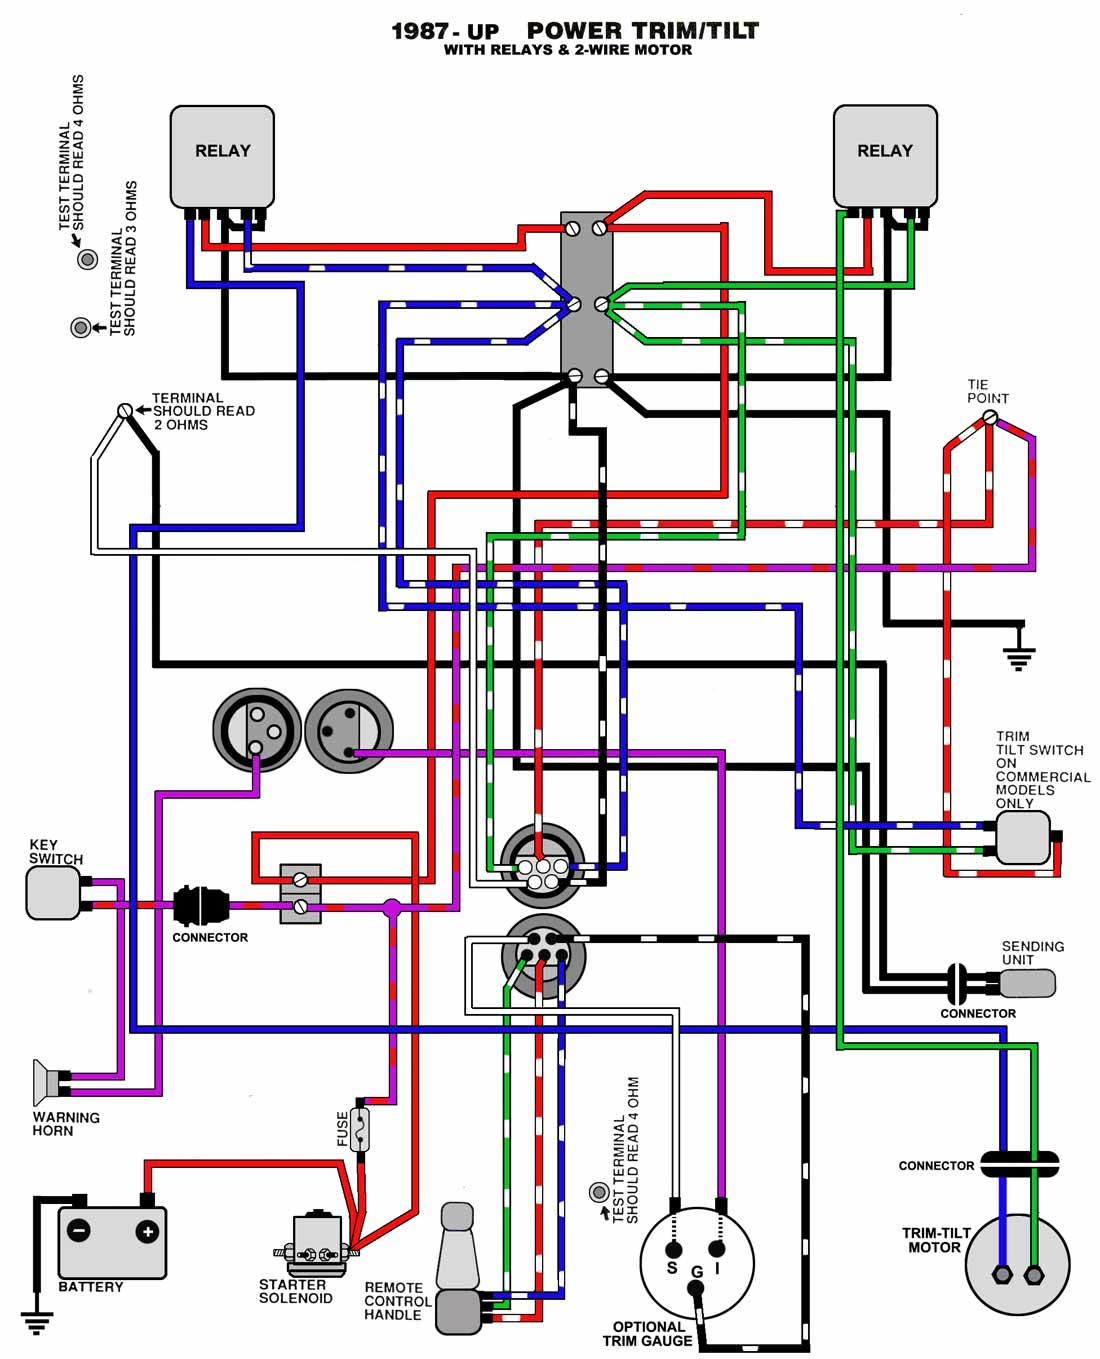 TnT_87_UP mastertech marine evinrude johnson outboard wiring diagrams Boat Ignition Switch Wiring Diagram at creativeand.co